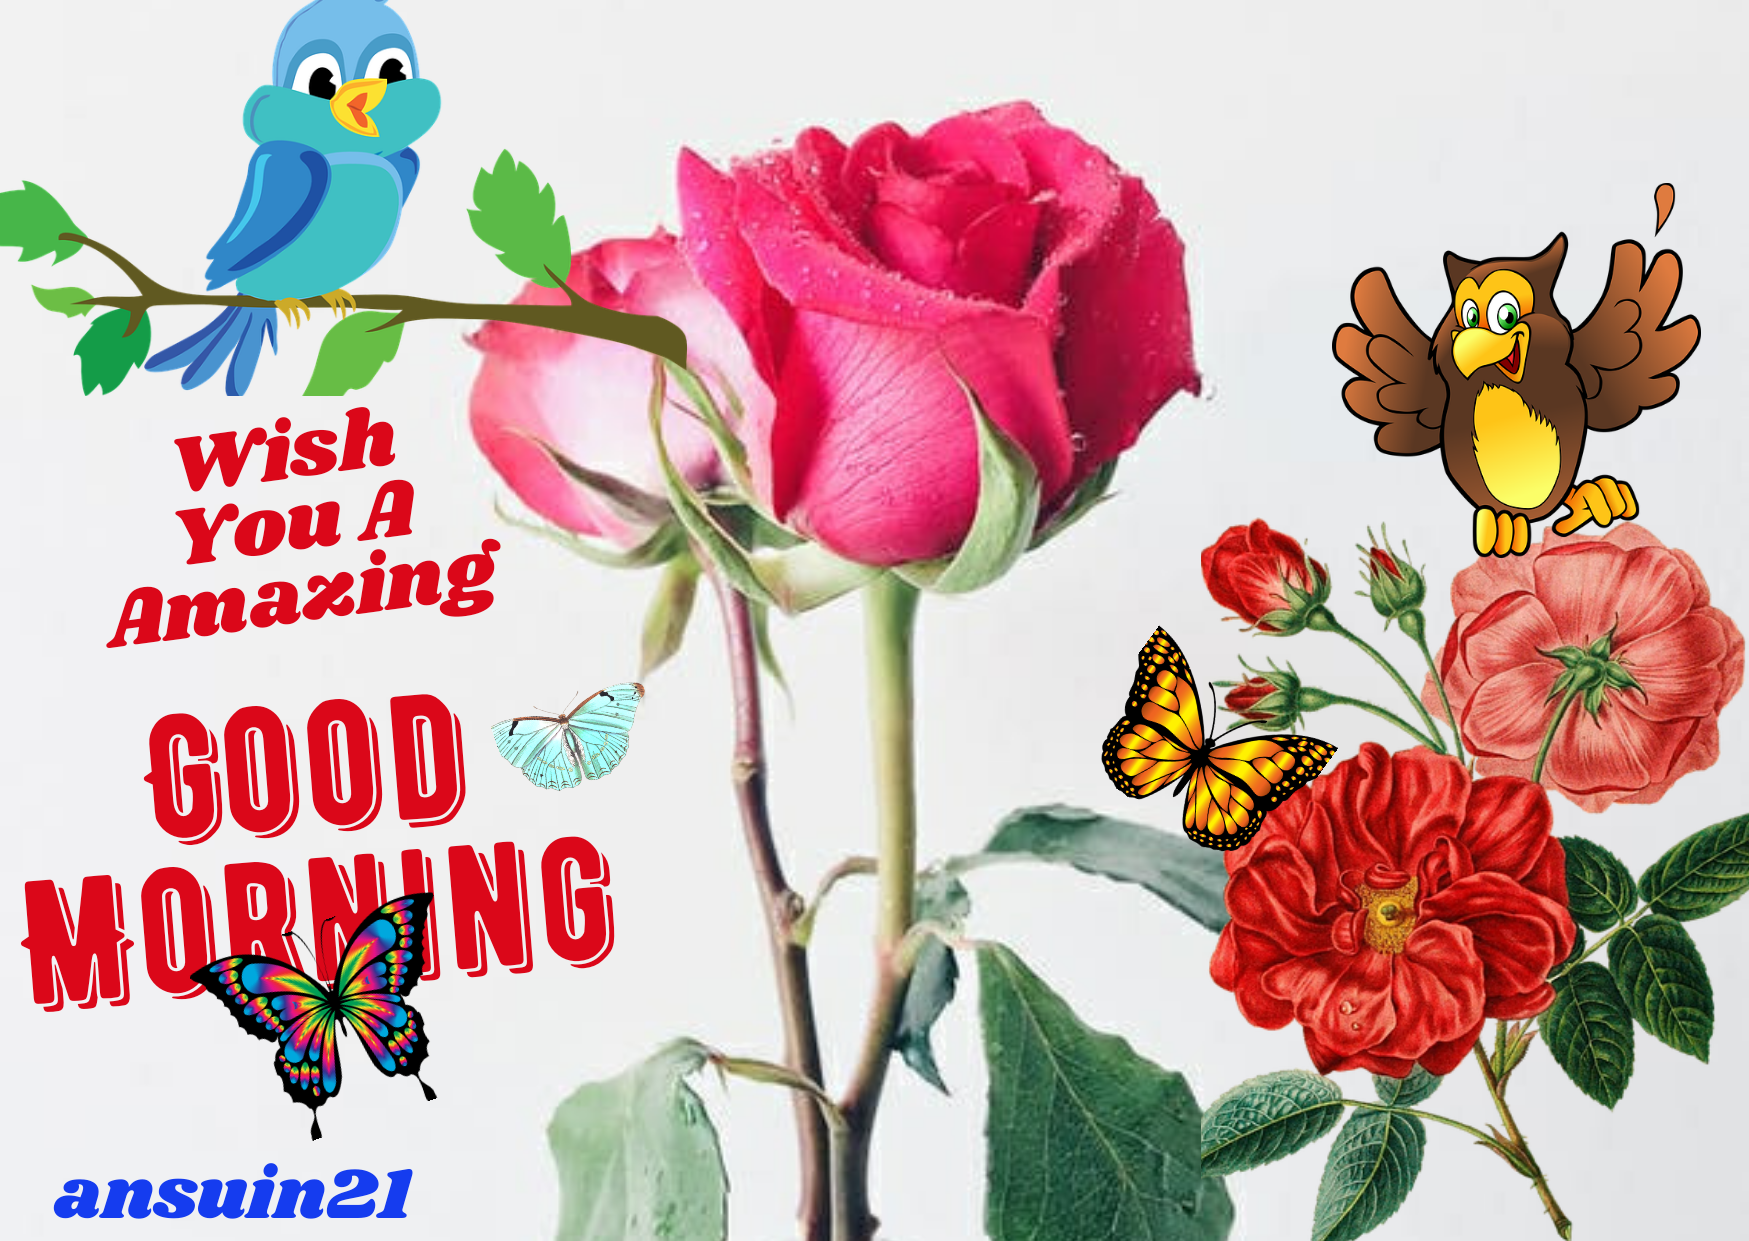 Best Good Morning HD Images for whatsaap free download, Romantic Good Morning English Status, Love Good Morning HD photos,